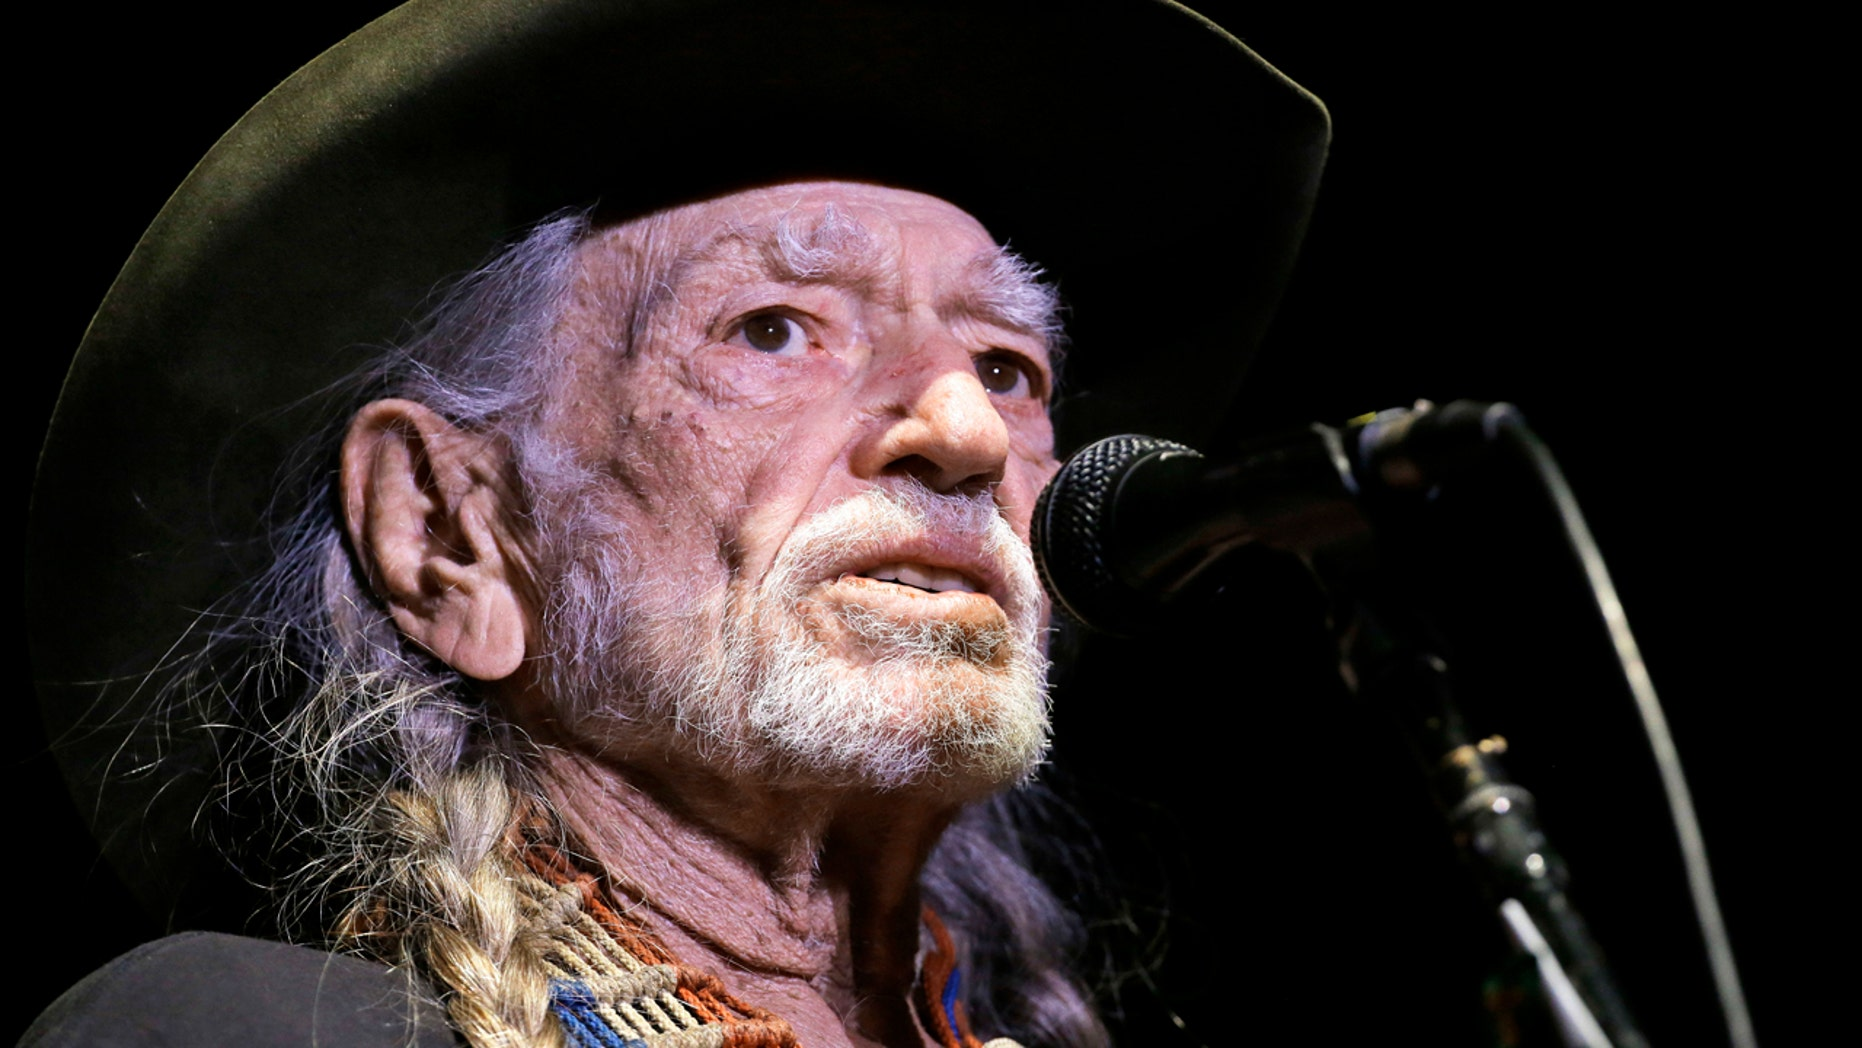 """Willie Nelson performs in Nashville, Tenn., Jan. 7, 2017. Nelson has called out current immigration policies as """"outrageous"""" and extended an offer to meet President Donald Trump at one of the detention centers at the U.S.-Mexico border."""